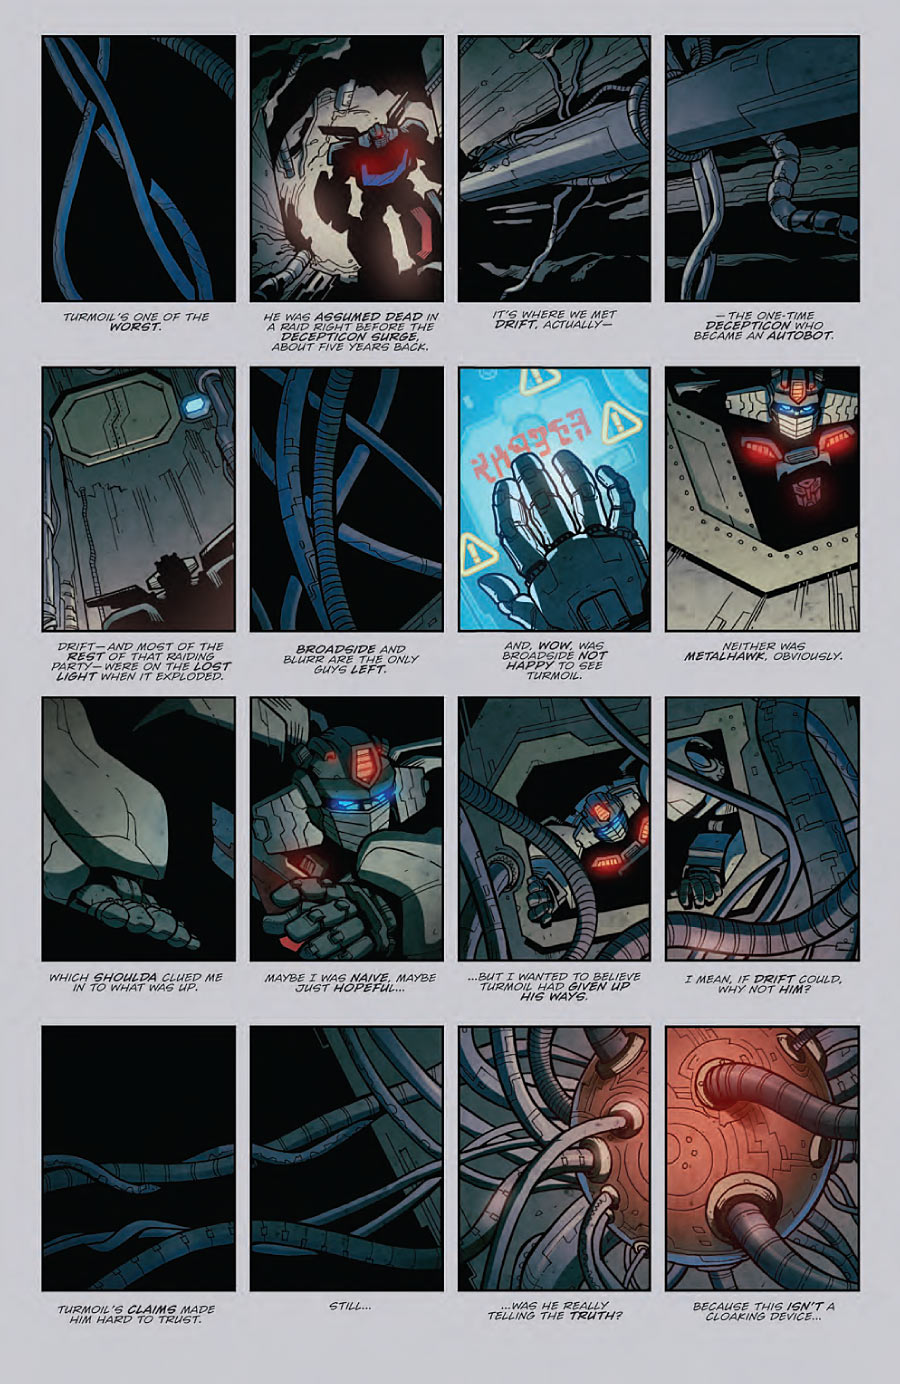 transformers-comics-robots-in-disguise-issue-7-page-7 Transformers Robots in Disguise #7